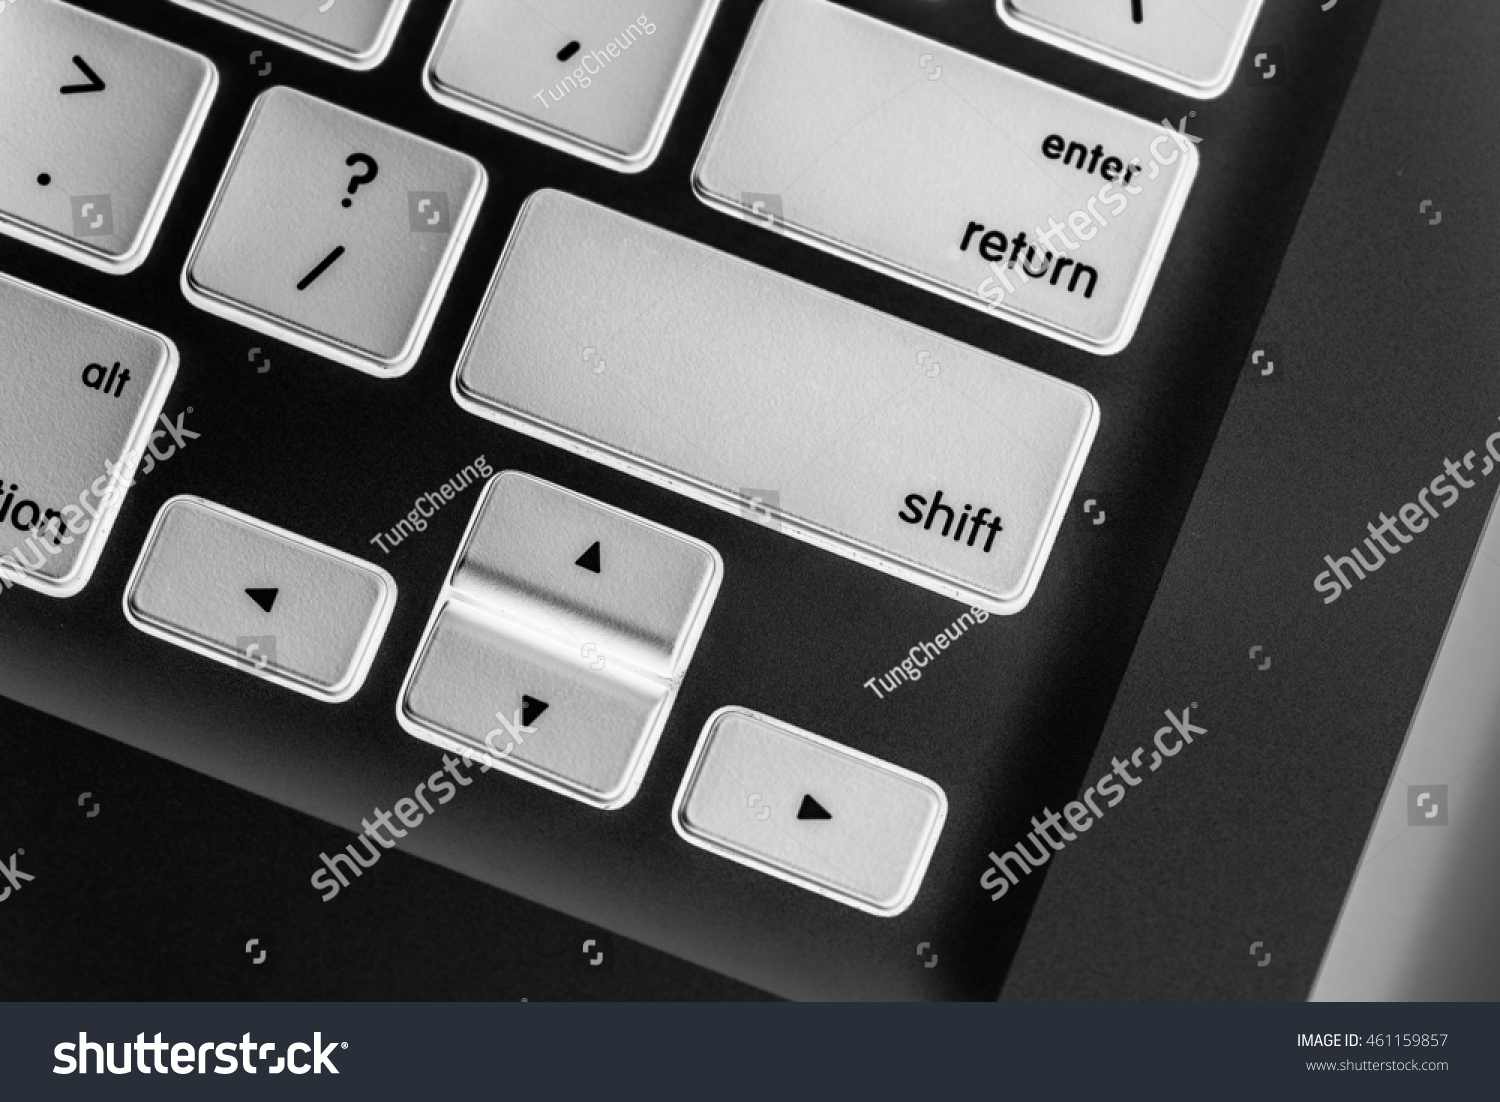 how to fix inverted keyboard